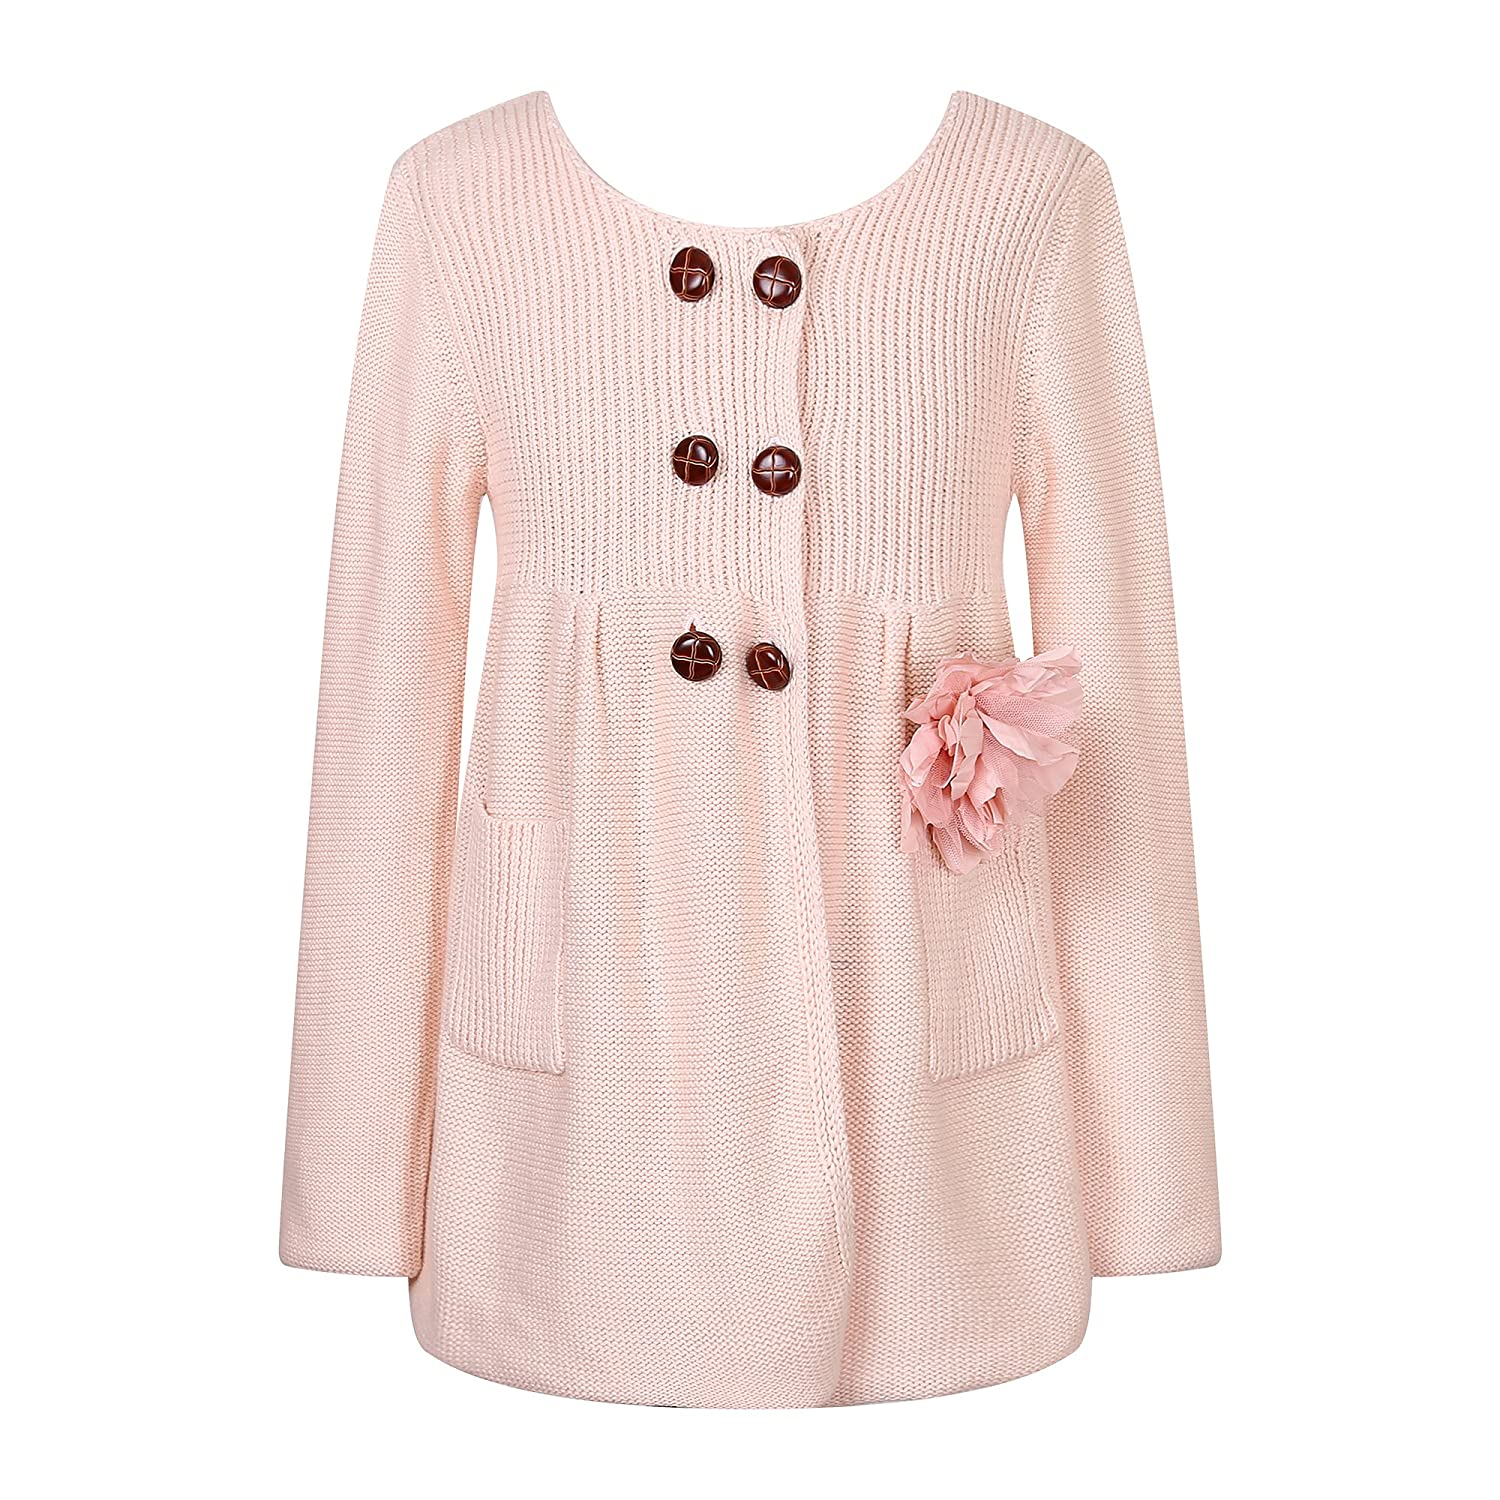 Richie House Girls' Knit Coat with Flower Accessory RH0152